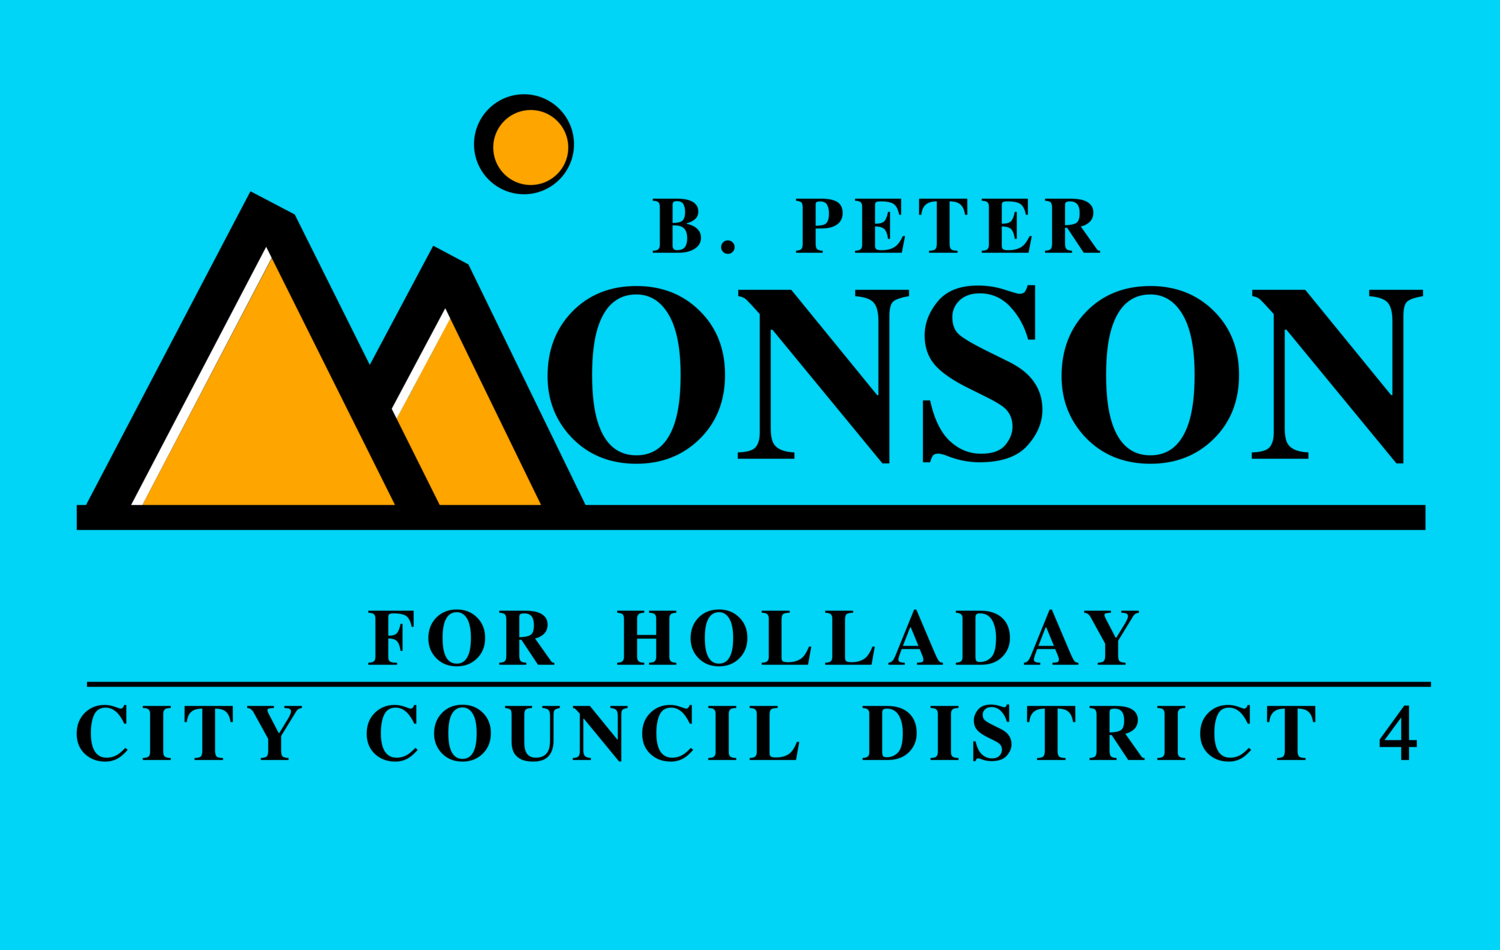 B. Peter Monson For Holladay City Council